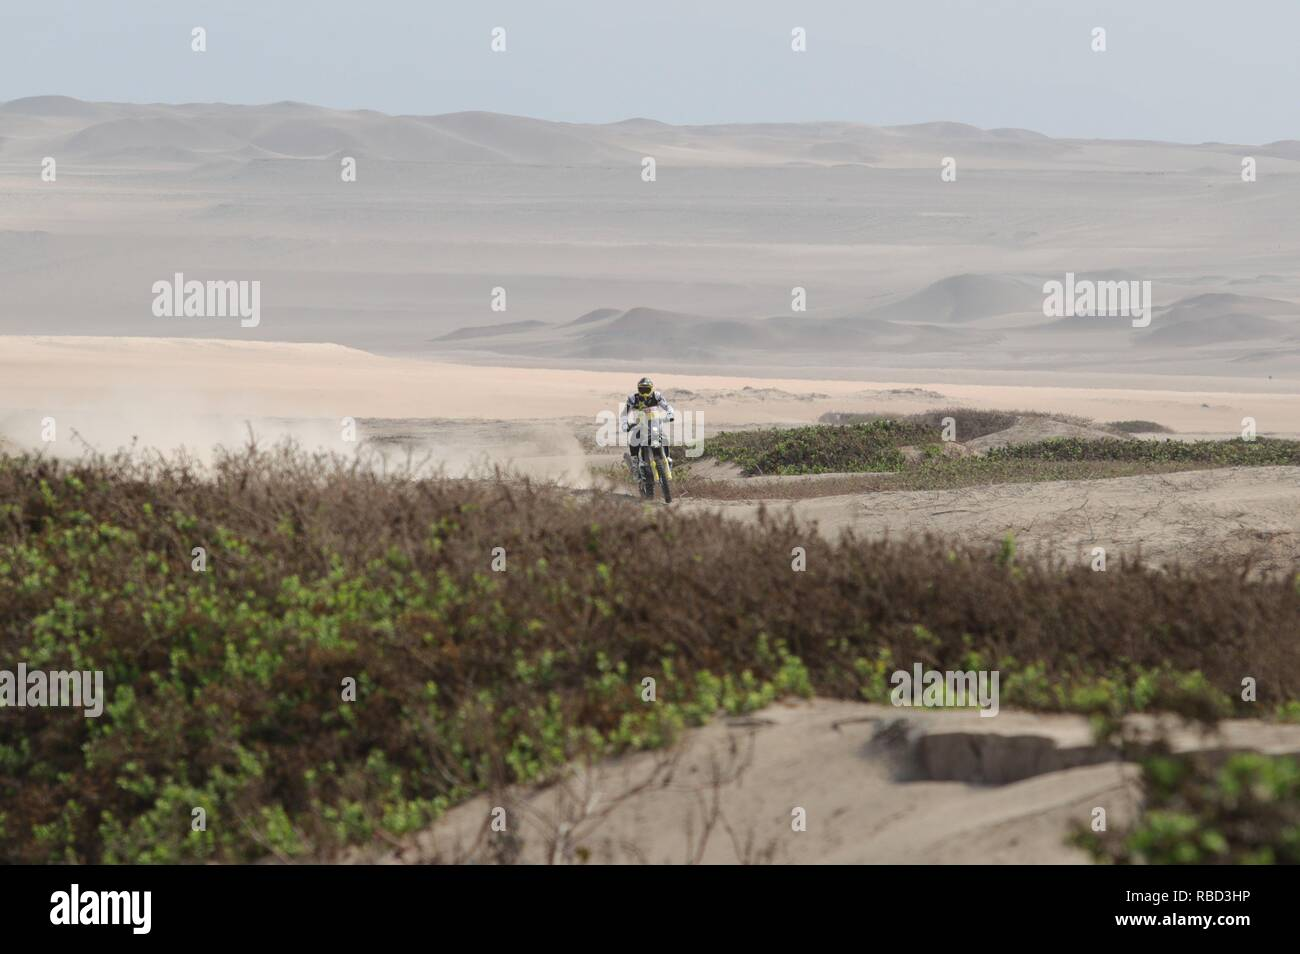 San Juan De Marcona, Peru. 09th Jan, 2019. Chilean Pablo Quintanilla drives his Husqvarna during the third stage of the Rally Dakar 2019, from San Juan de Marcona to Arequipa, in Peru, 09 January 2019. Credit: Ernesto Arias/EFE/Alamy Live News - Stock Image